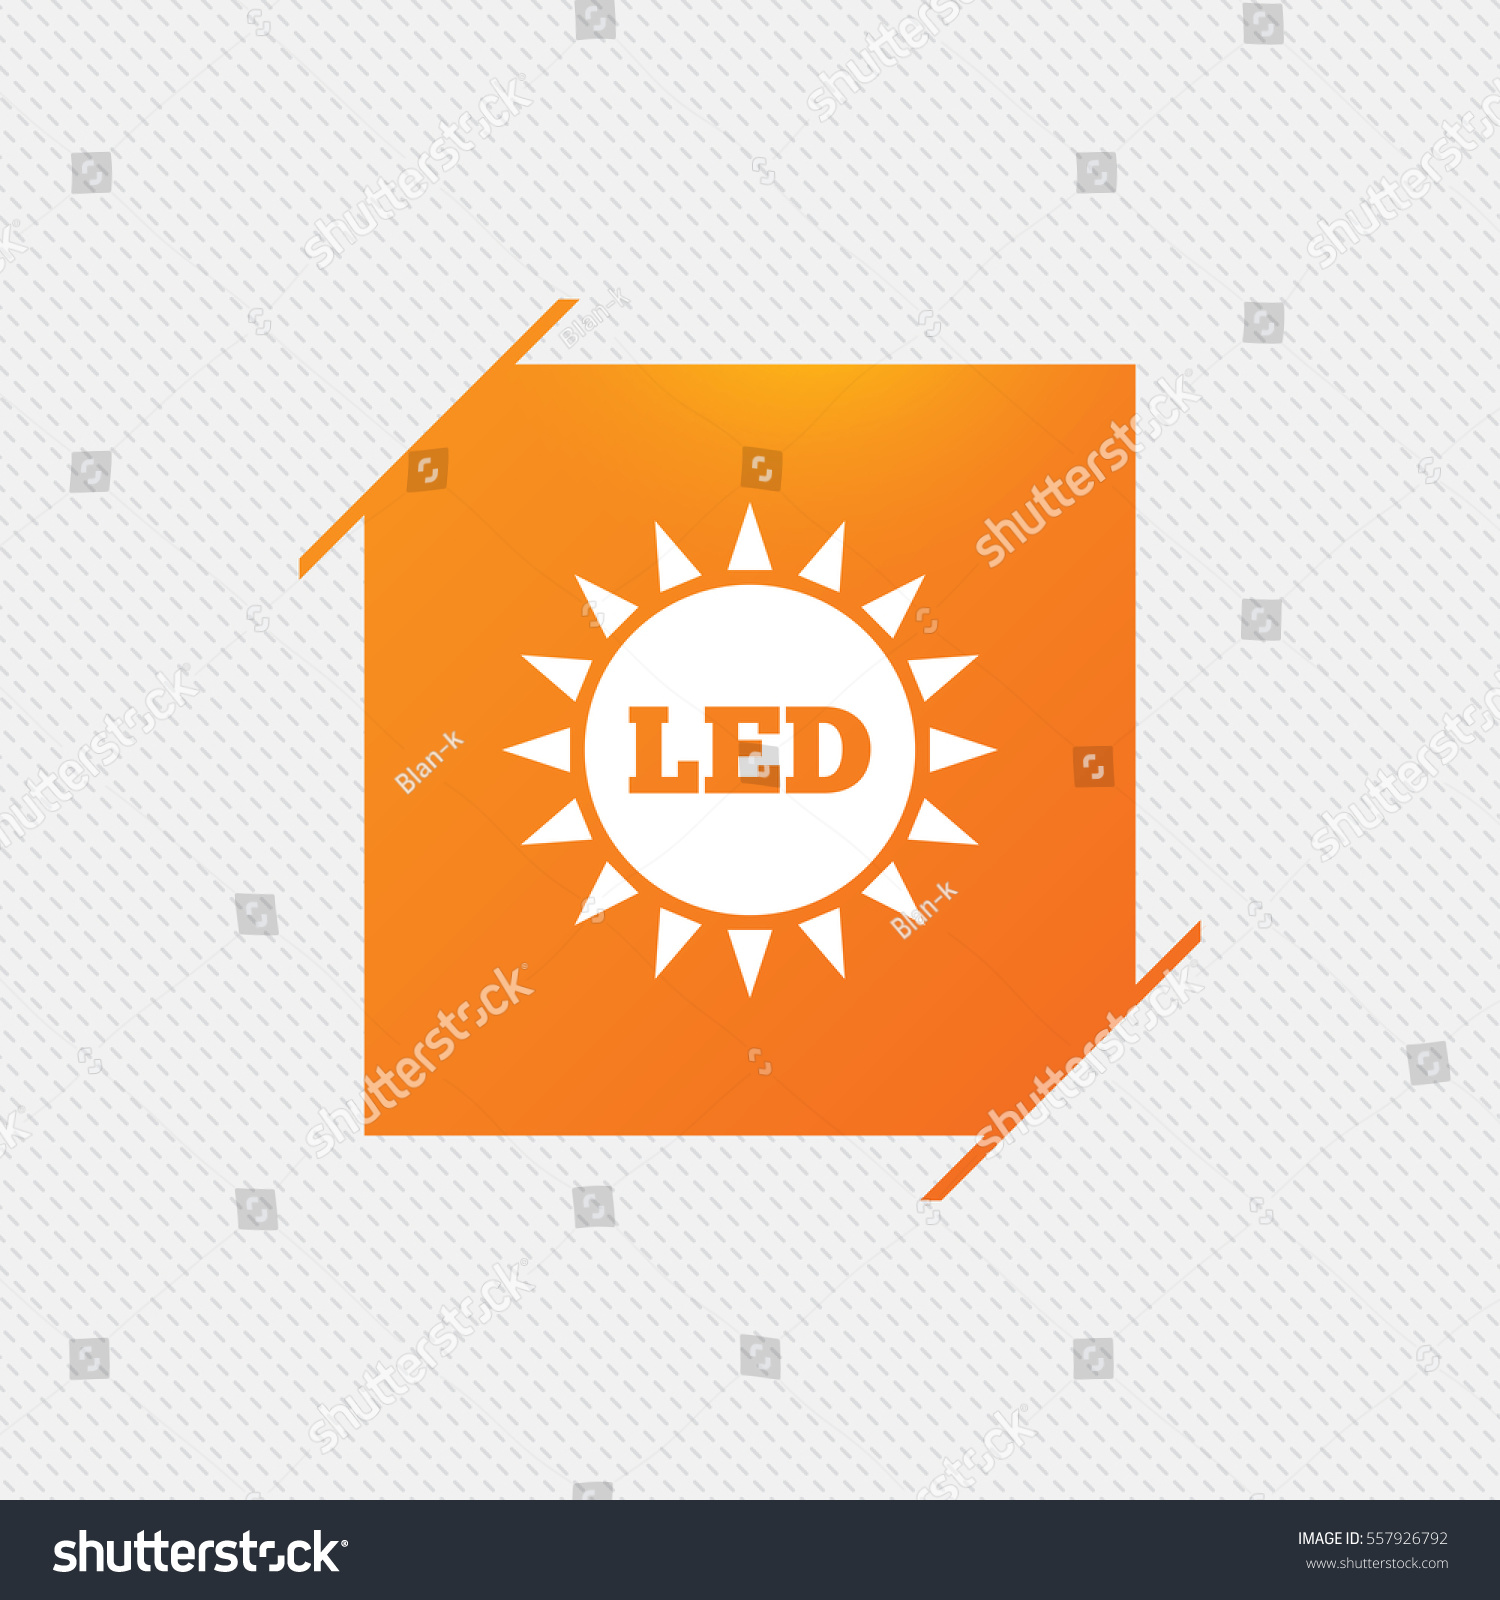 Led light sun icon energy symbol stock vector 557926792 shutterstock led light sun icon energy symbol orange square label on pattern vector biocorpaavc Images